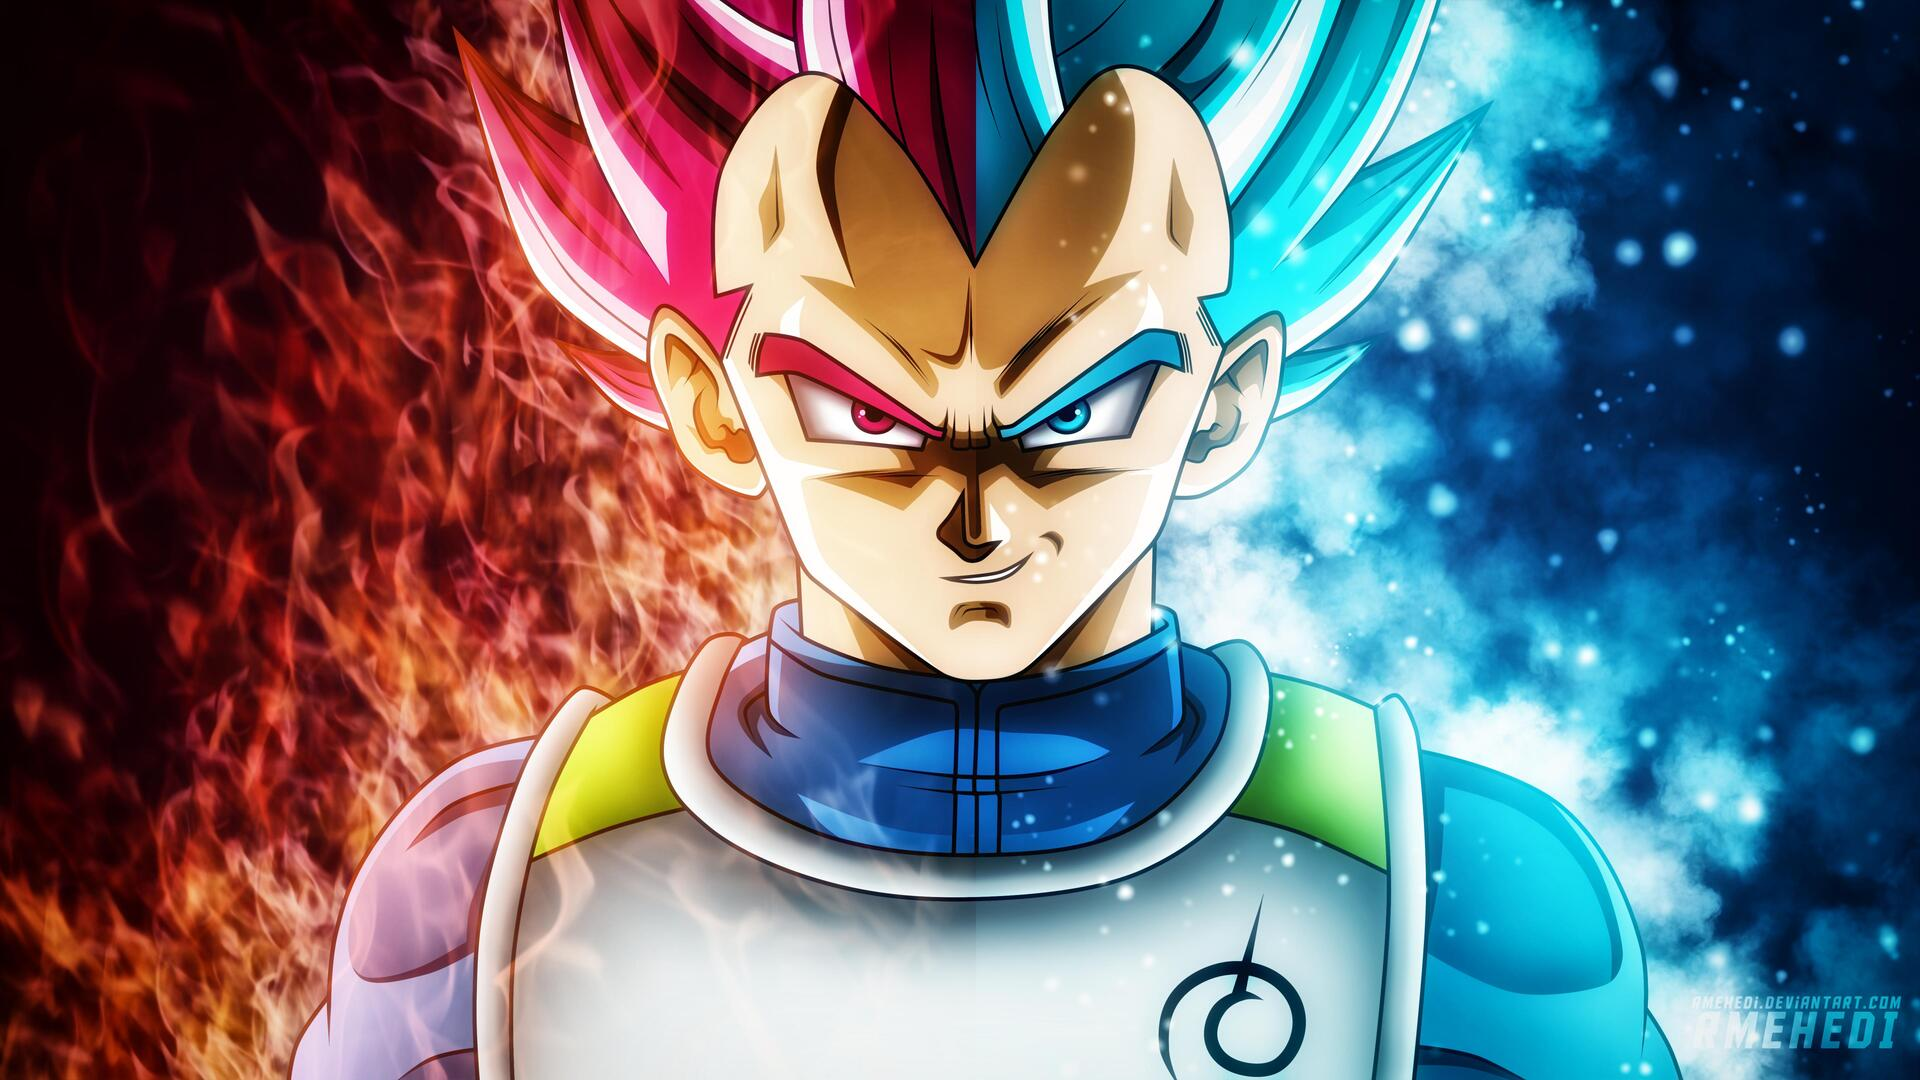 Goku Ultra Instinct Wallpaper 3d 1920x1080 Dragon Ball Super Anime 5k Laptop Full Hd 1080p